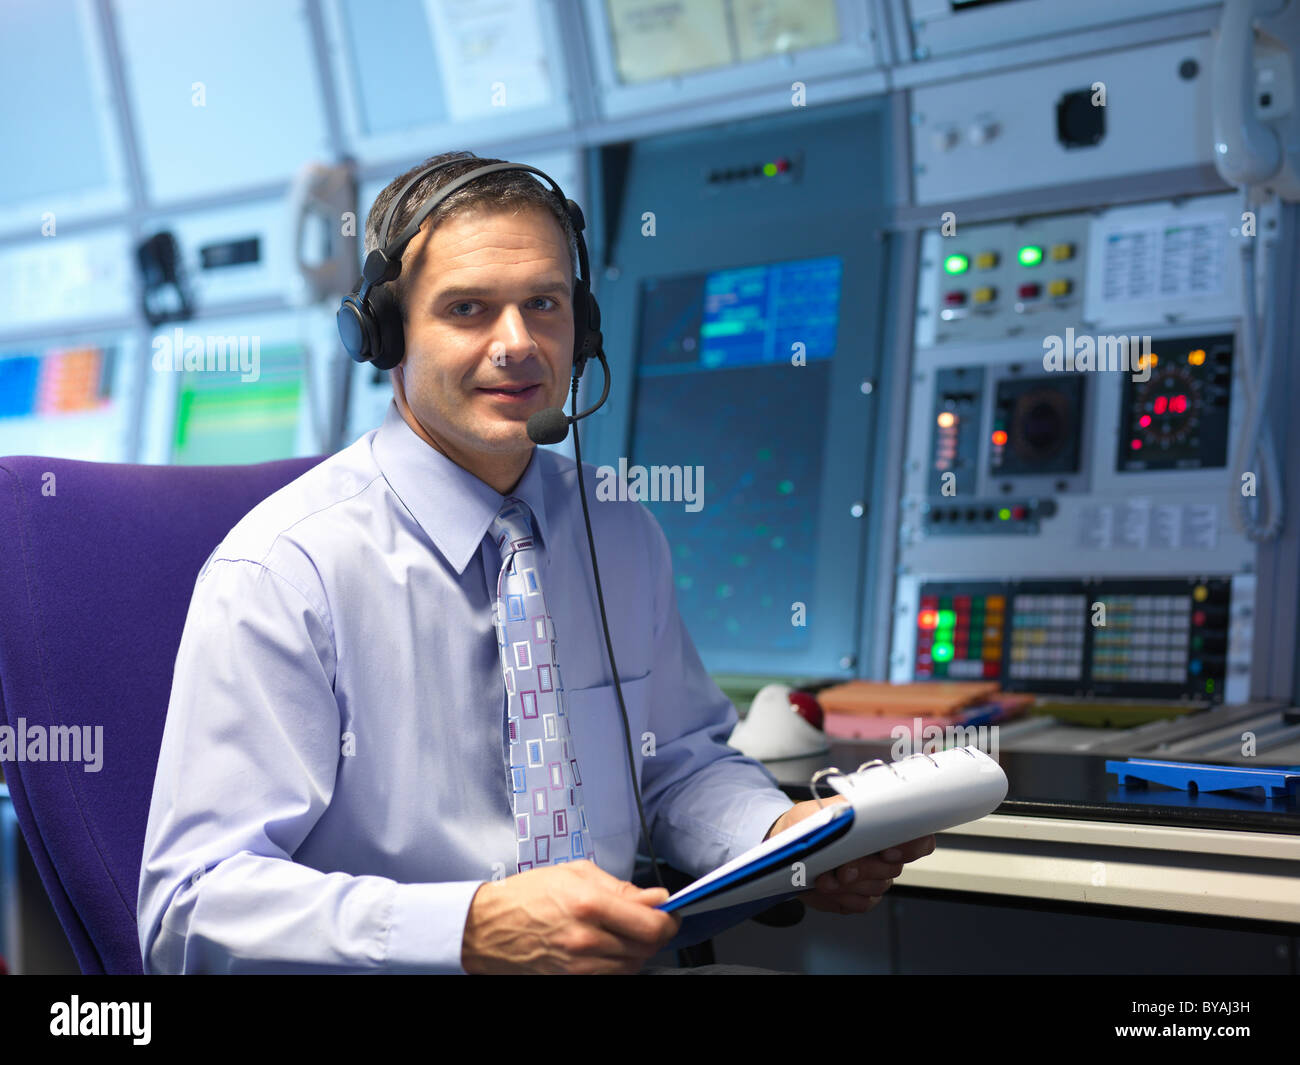 Air traffic controller in radar room - Stock Image